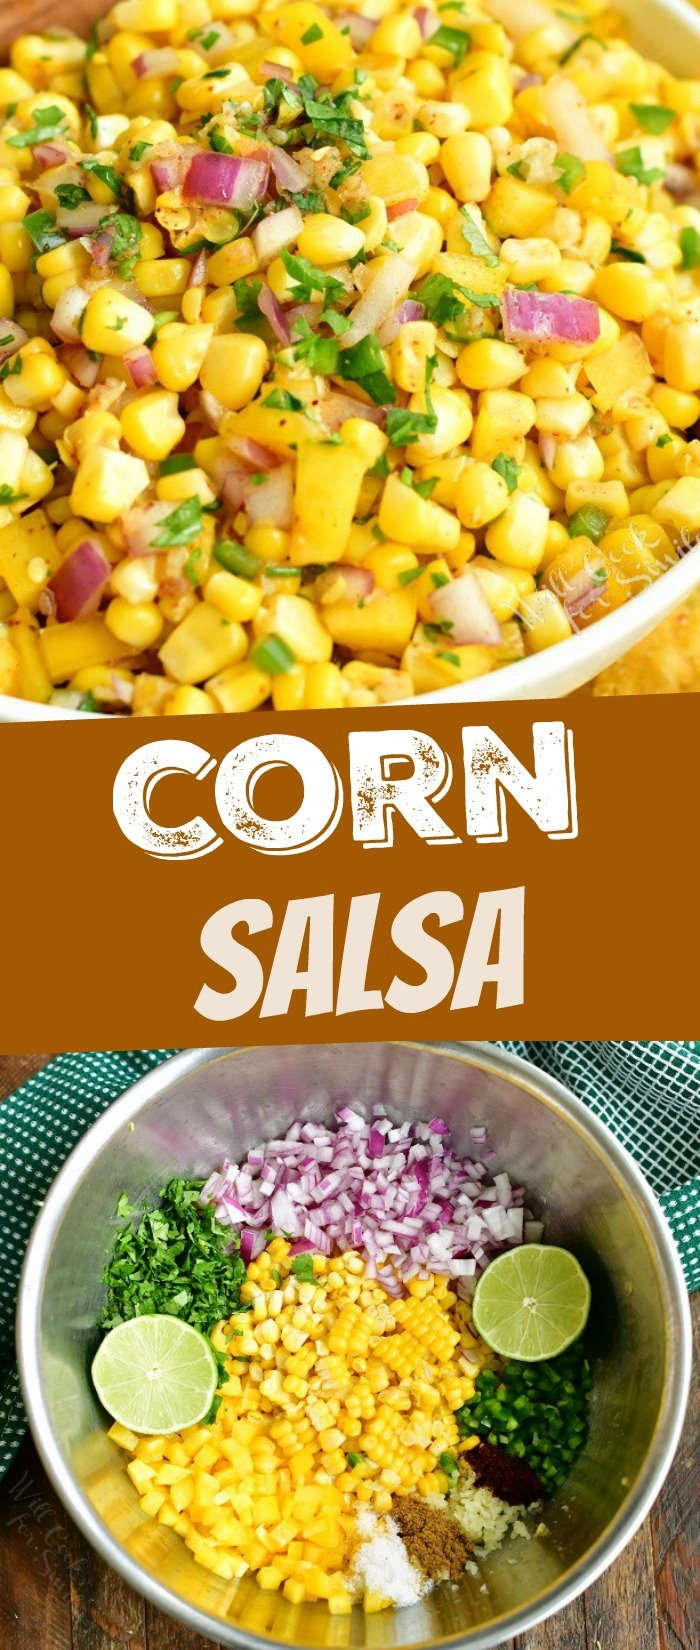 collage of two images of close up corn salsa in a white bowl on top and ingredients side by side in a bowl on the bottom